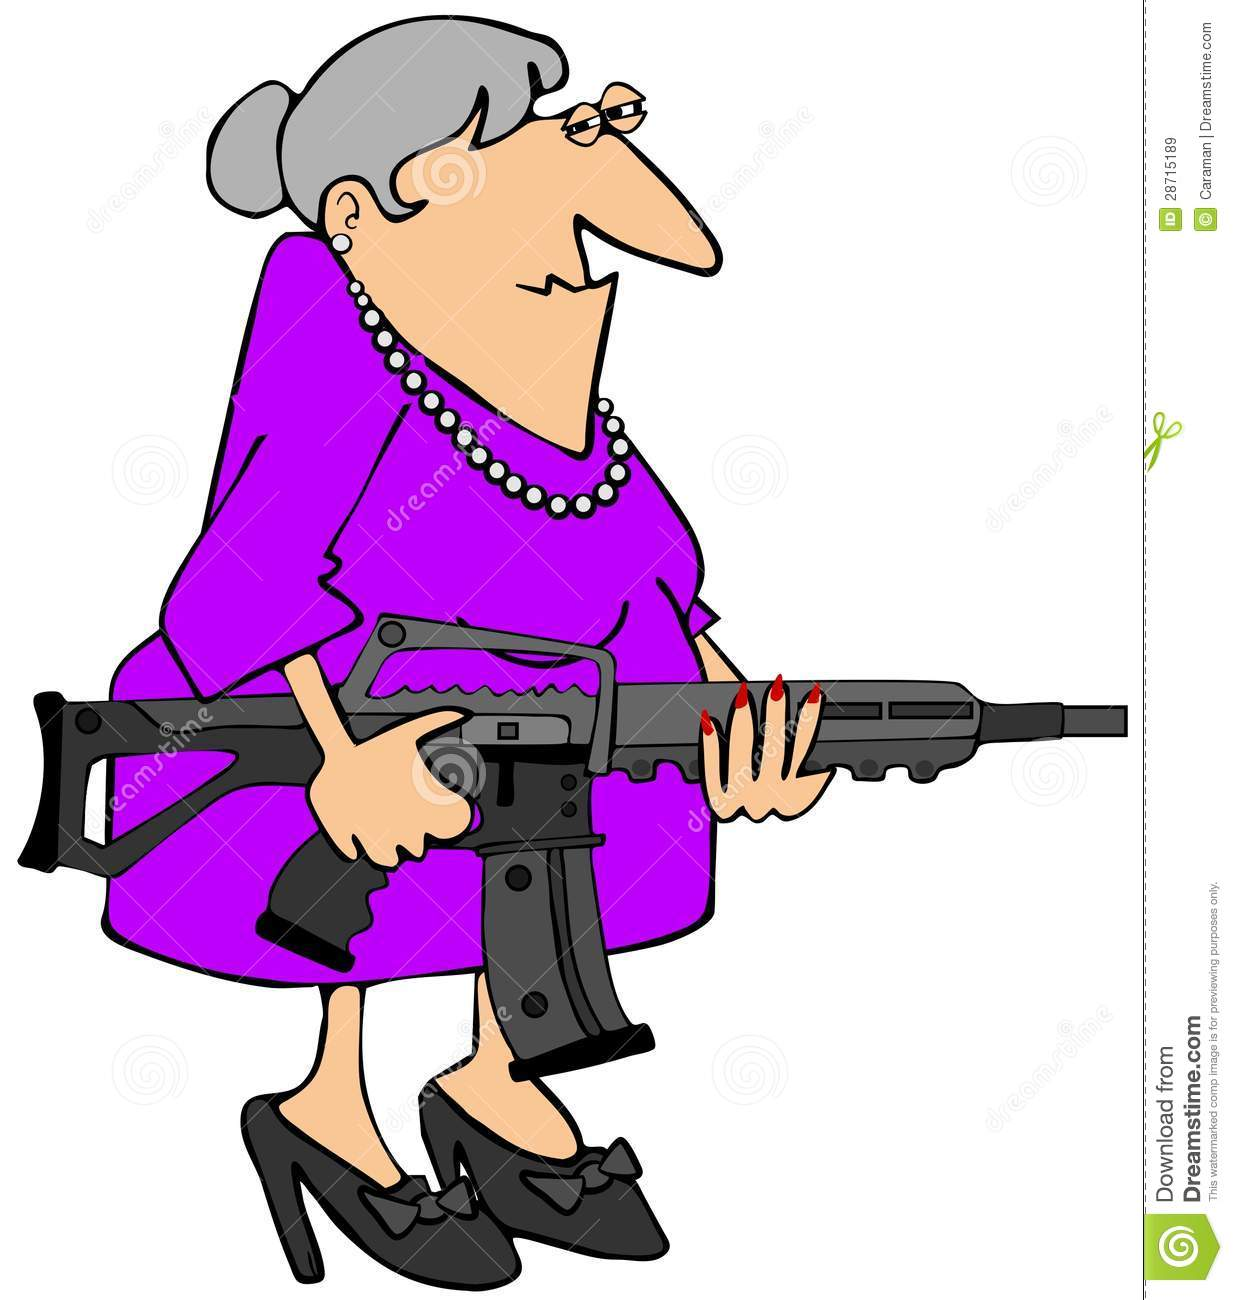 Animated super grandma clipart clipart freeuse iCLIPART - Clipart Cartoon of a Grandma Hitting a Computer with ... clipart freeuse